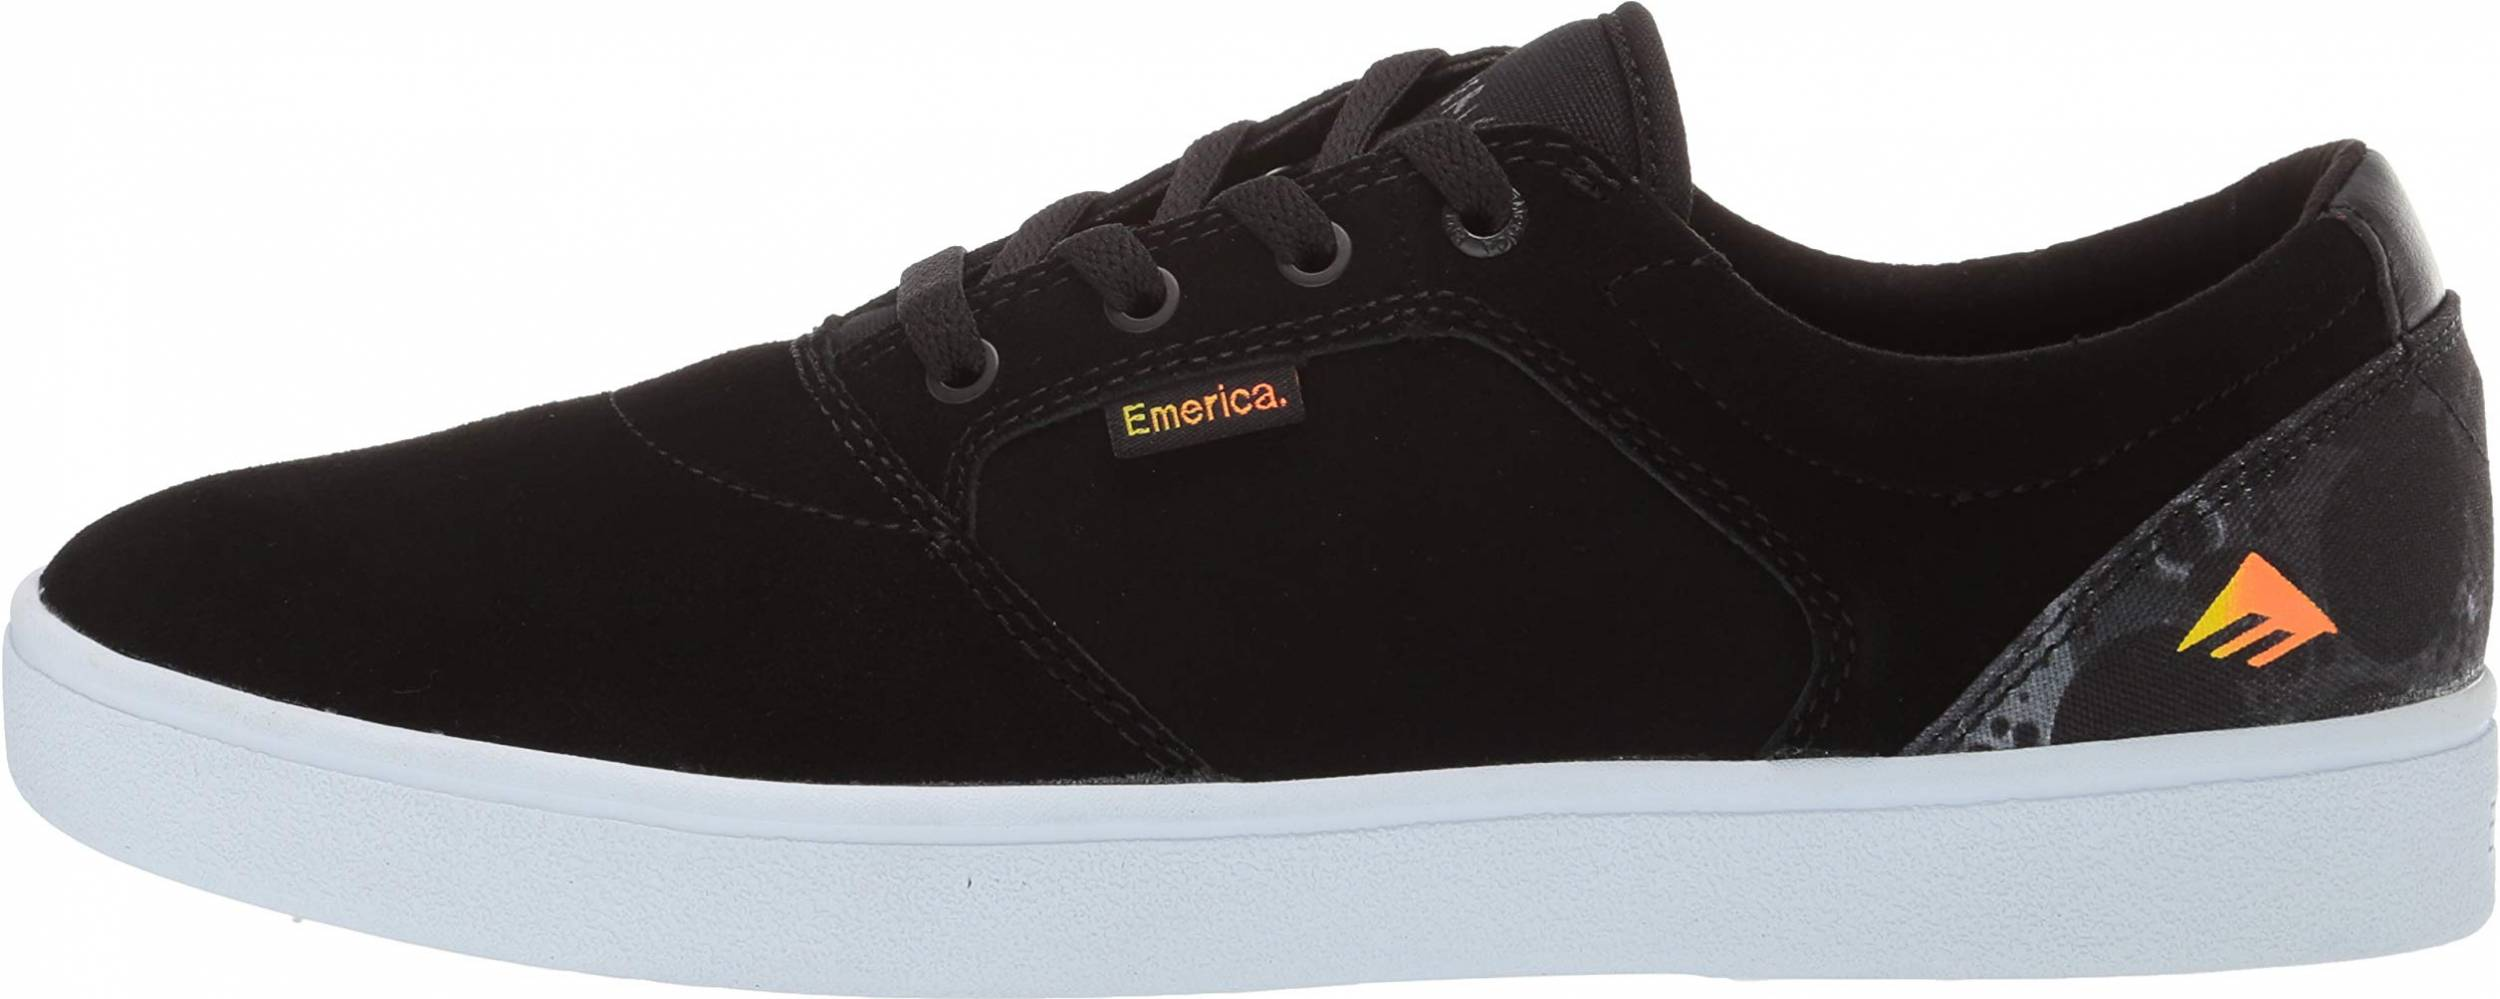 Only $35 + Review of Emerica Figgy Dose